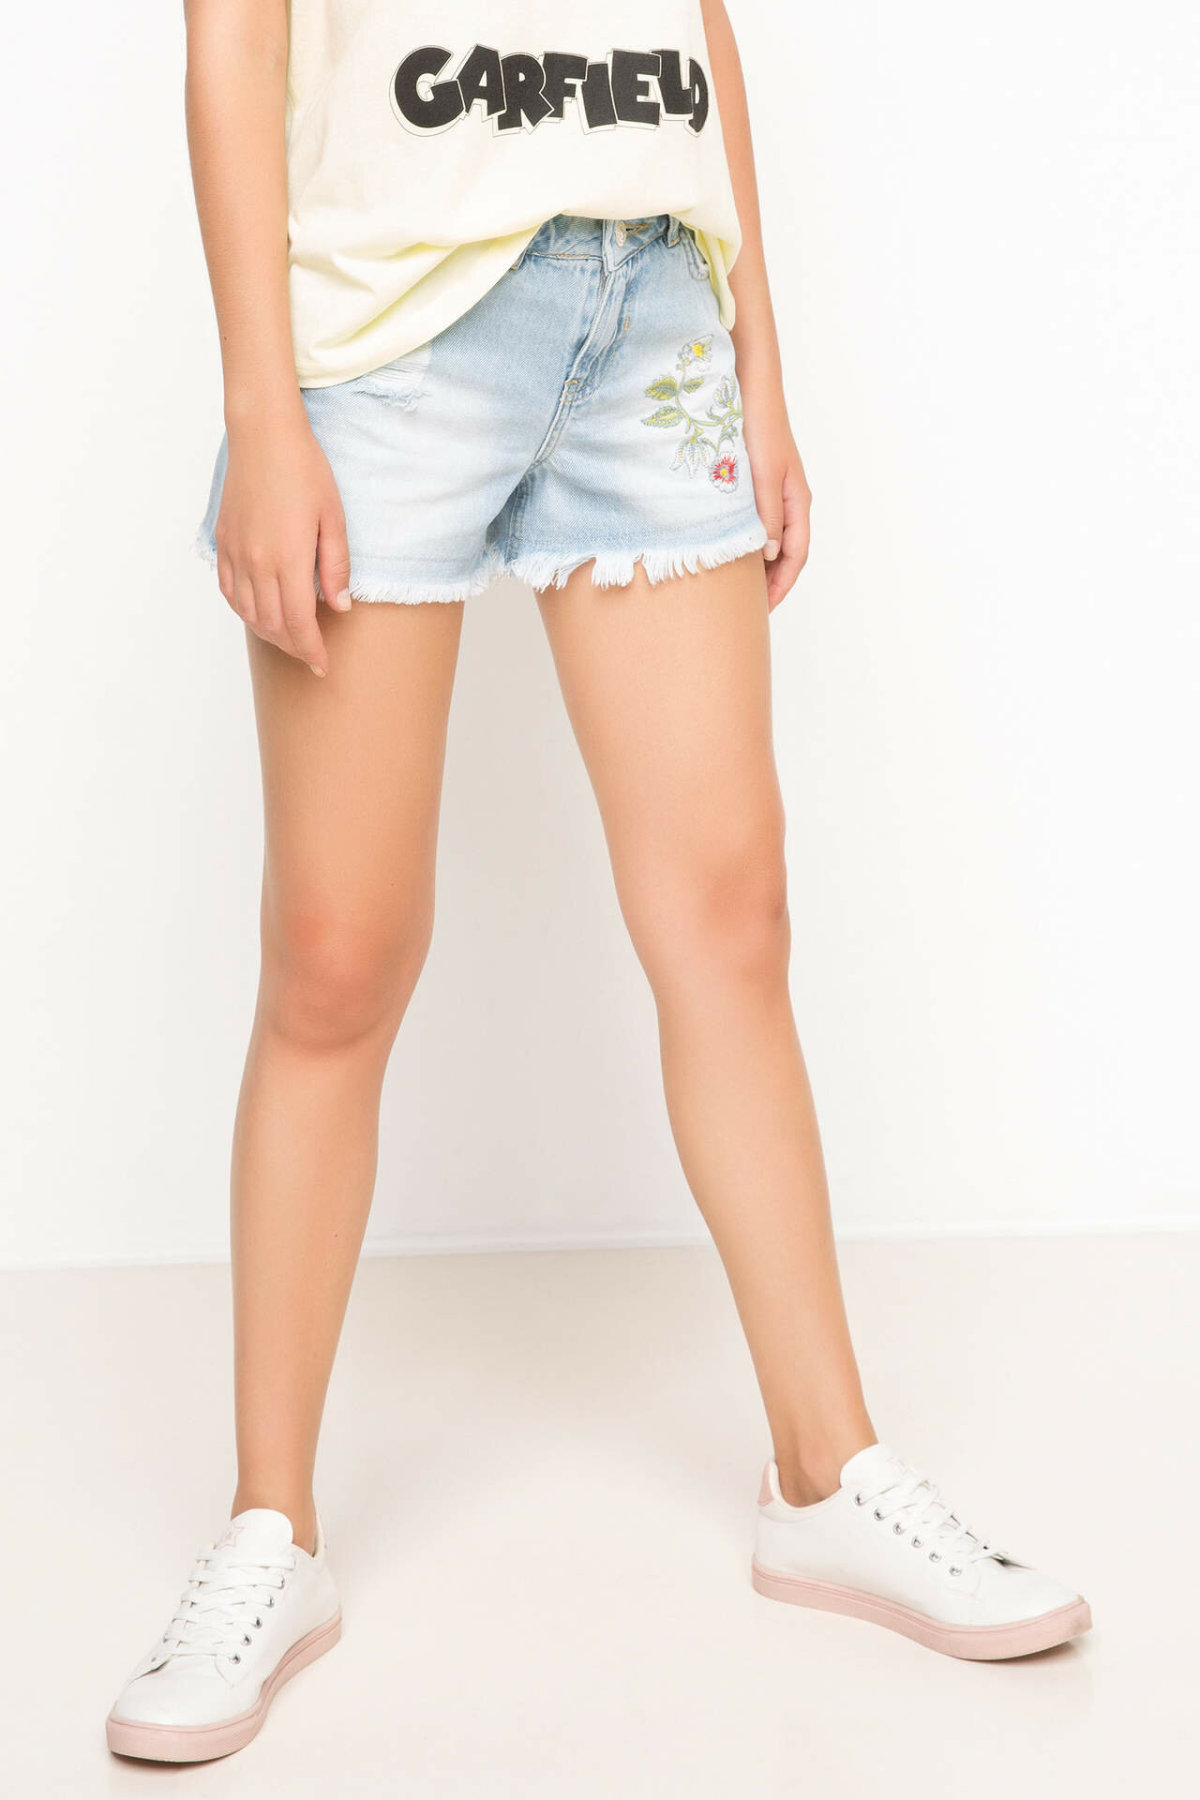 DeFacto Women Joker Worn Blue Mid-Waist Pencil Denim Solid Shorts High Street Simple Jeans Shorts Women-H9284AZ17HS